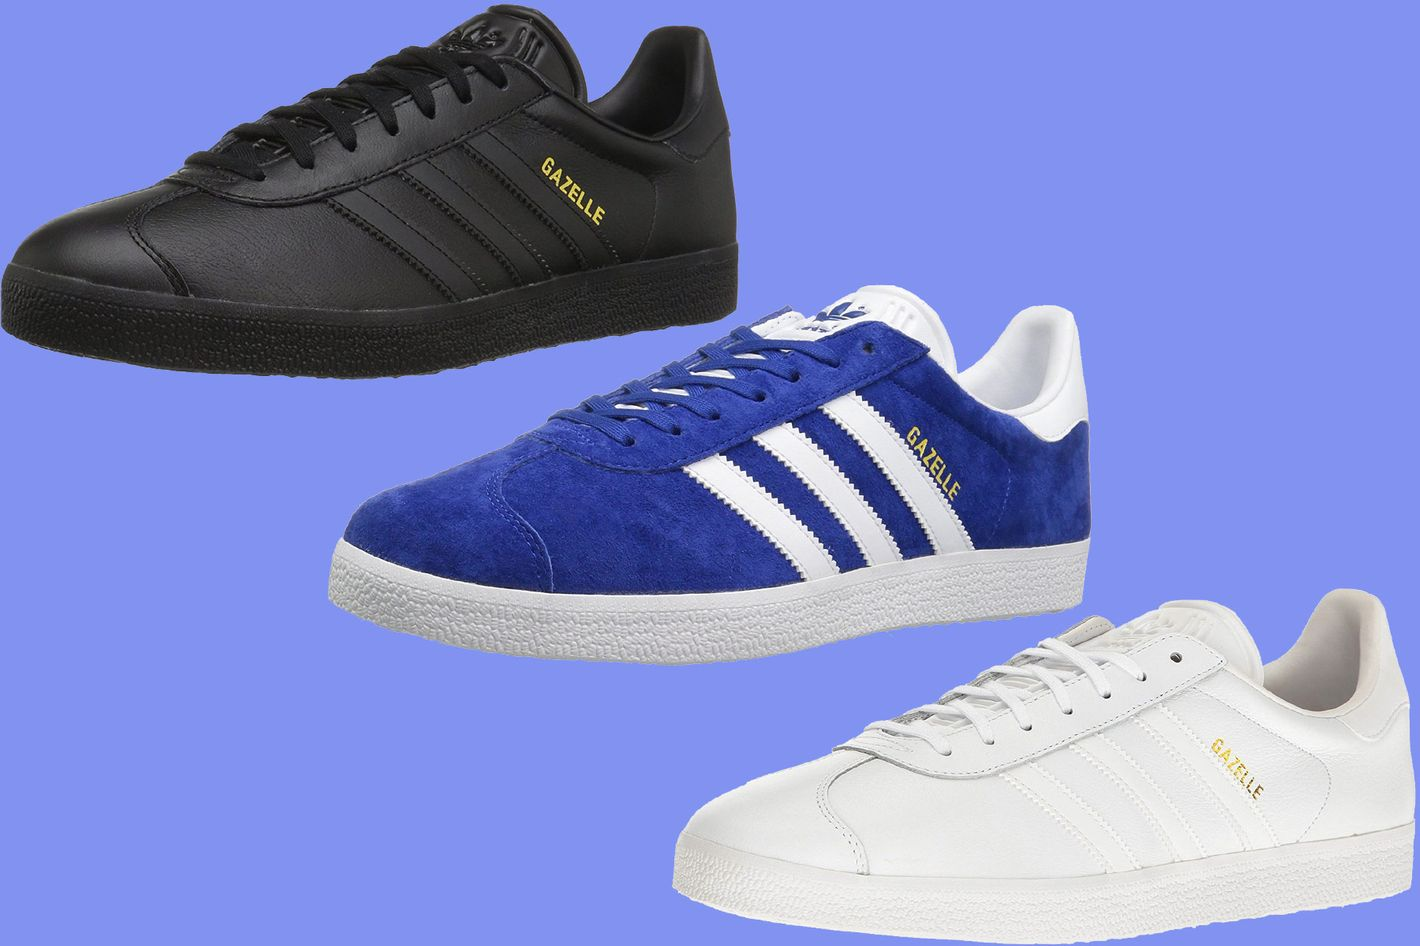 93f3155100e Why Adidas Gazelles Are Better Than Stan Smiths